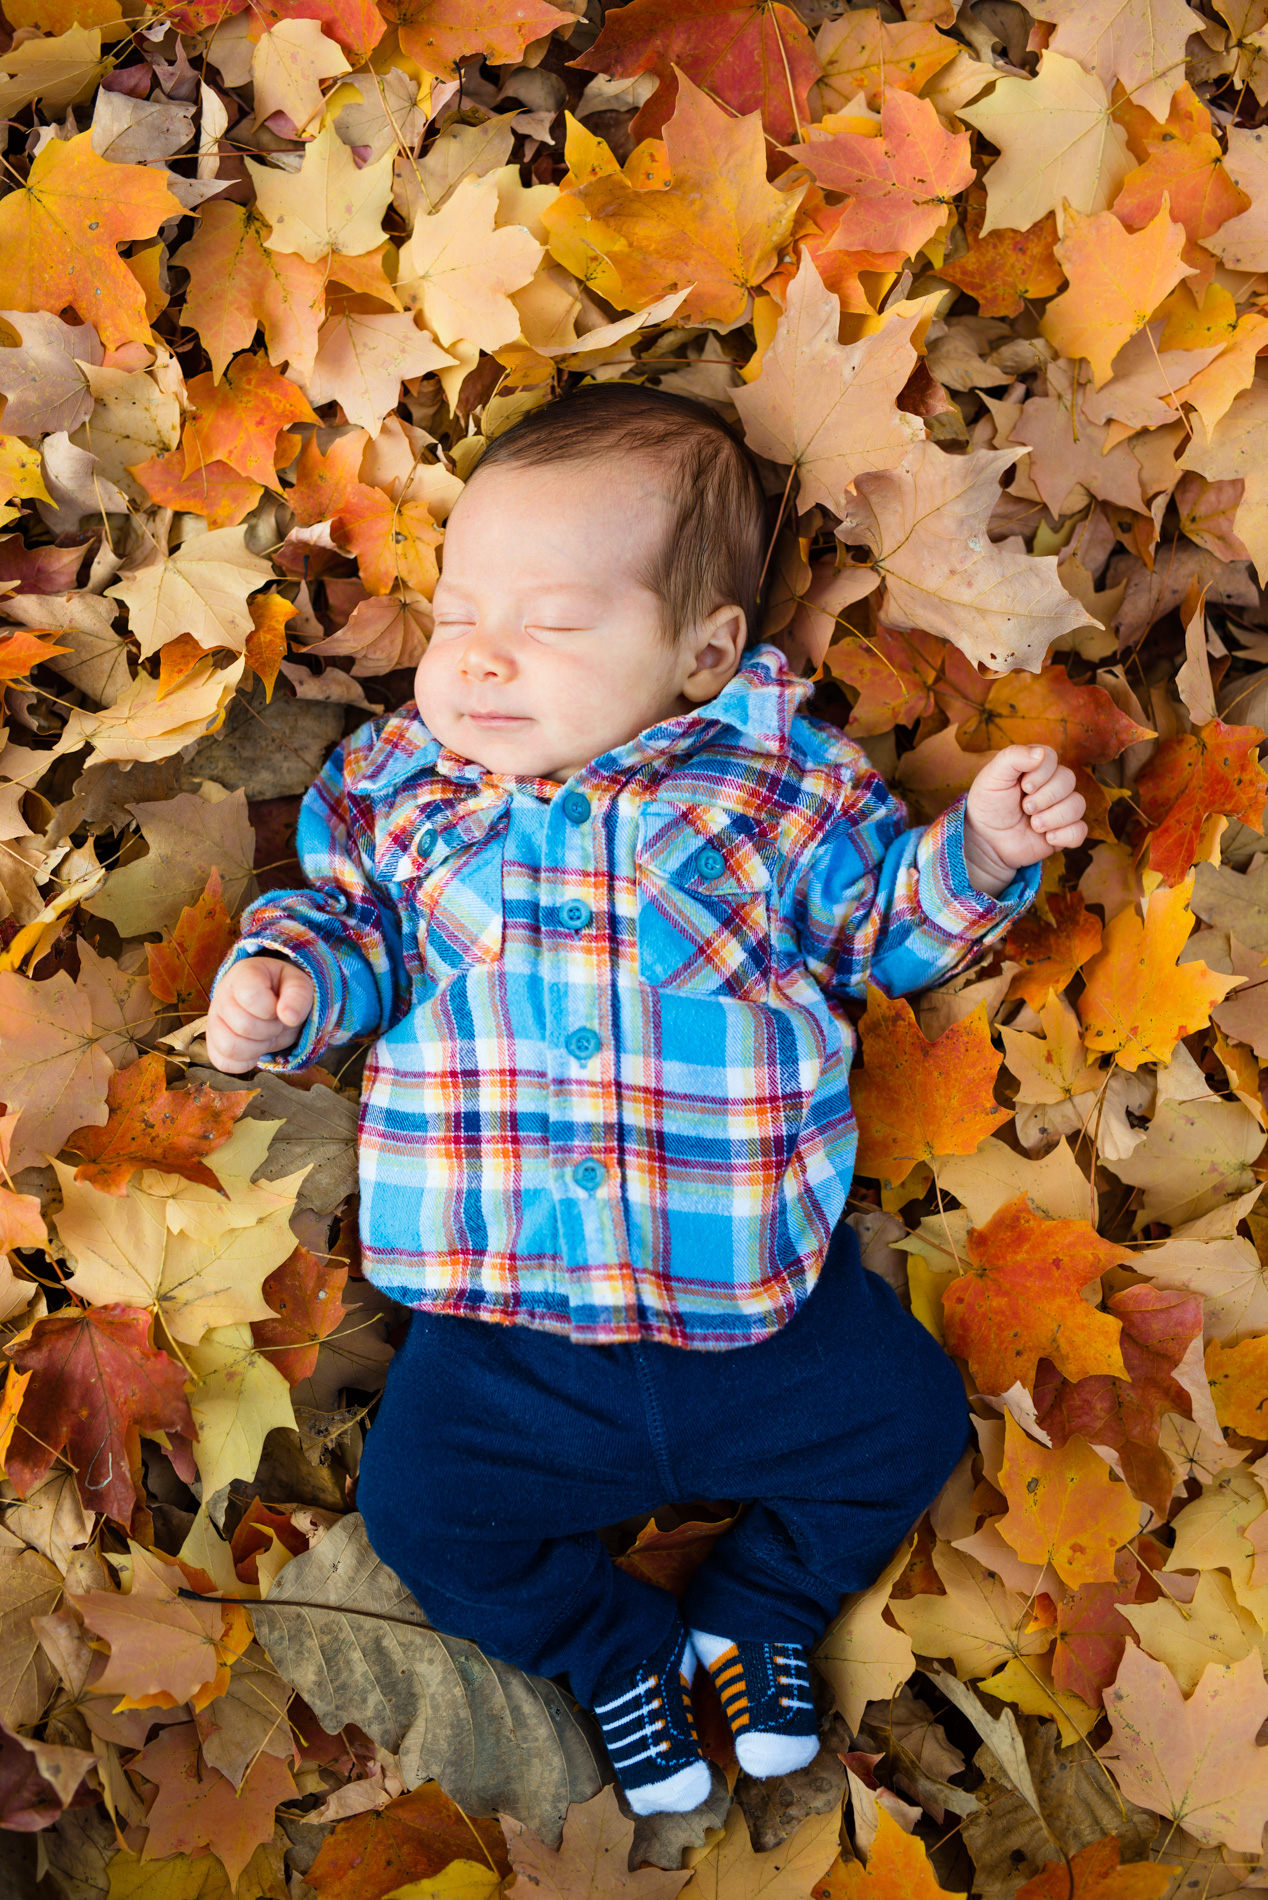 I can't imagine losing this image and photos like these of our first son, Nathaniel Jinks.